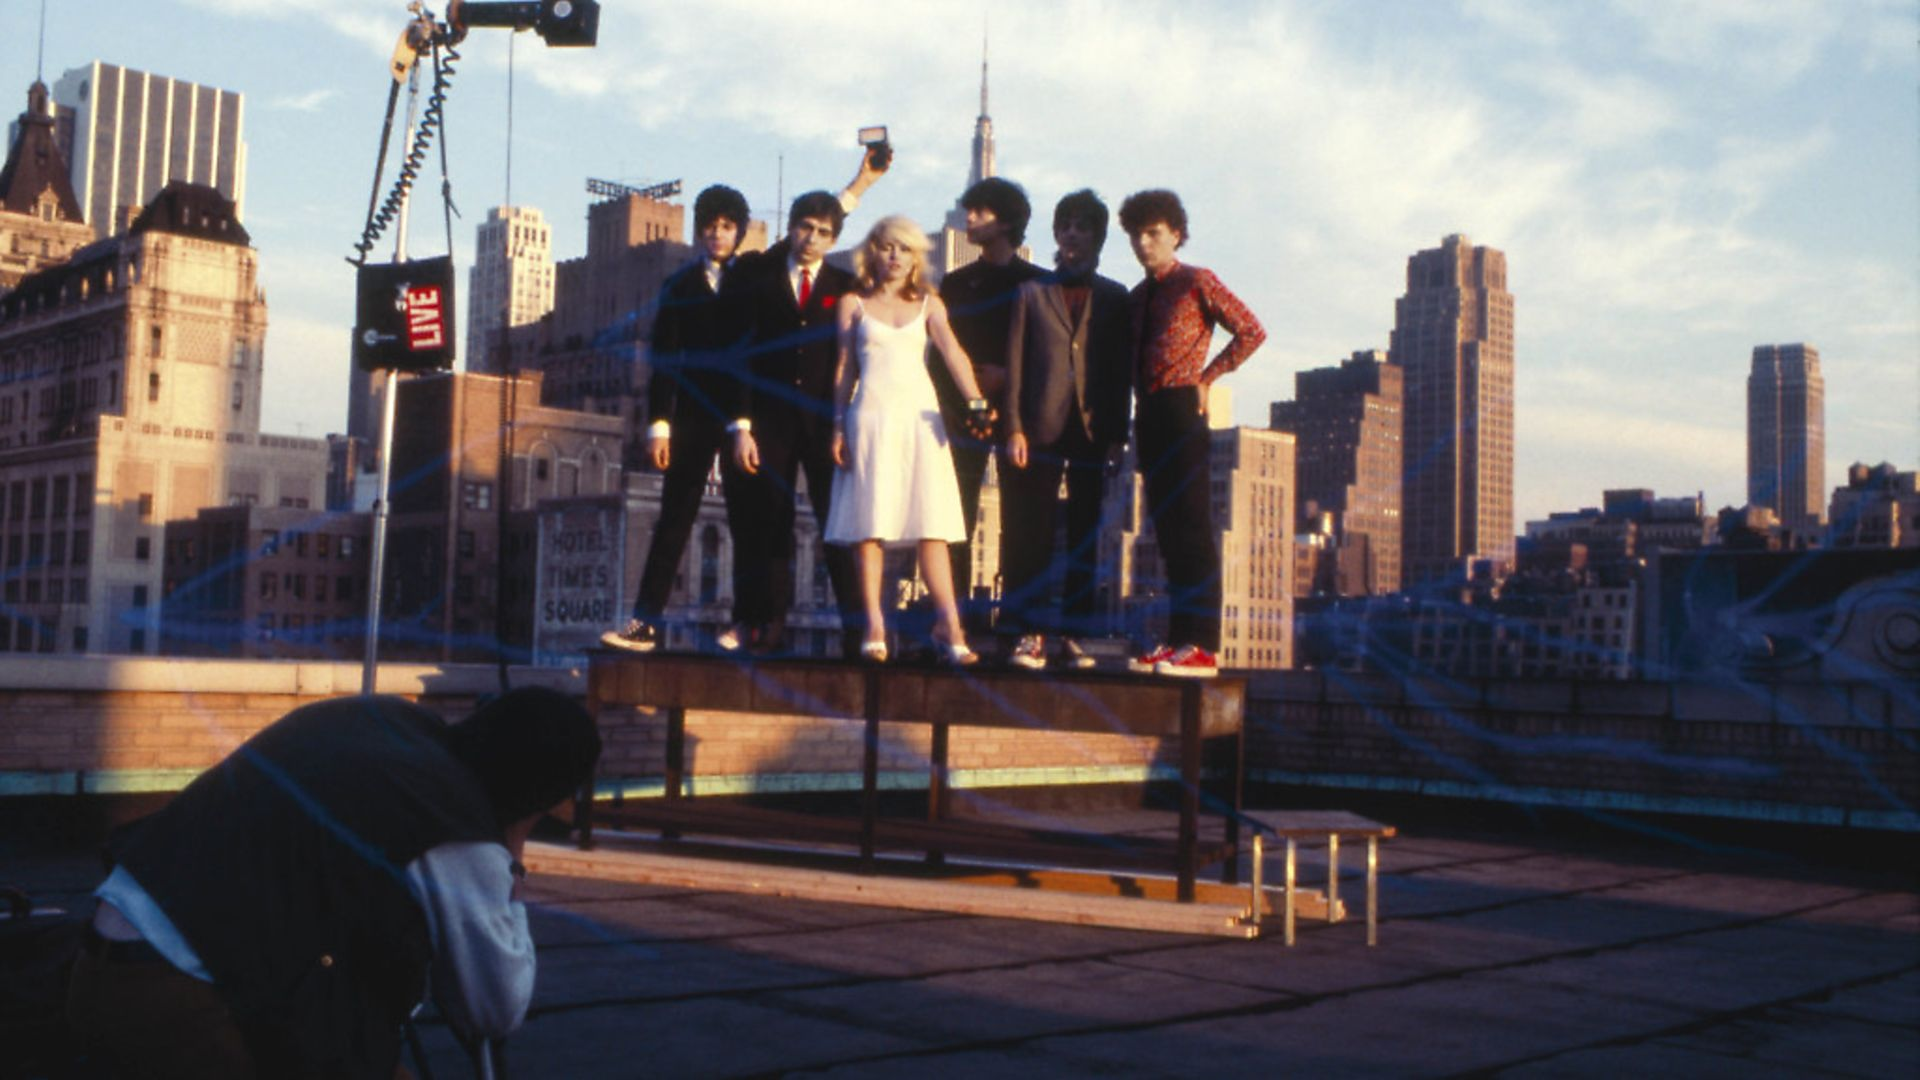 Blondie in New York, 1978. Pictured from left to right: Clem Burke, Chris Stein, Debbie Harry, Jimmy Destri, Frank Infante and Nigel Harrison. Picture: Getty Images - Credit: Redferns